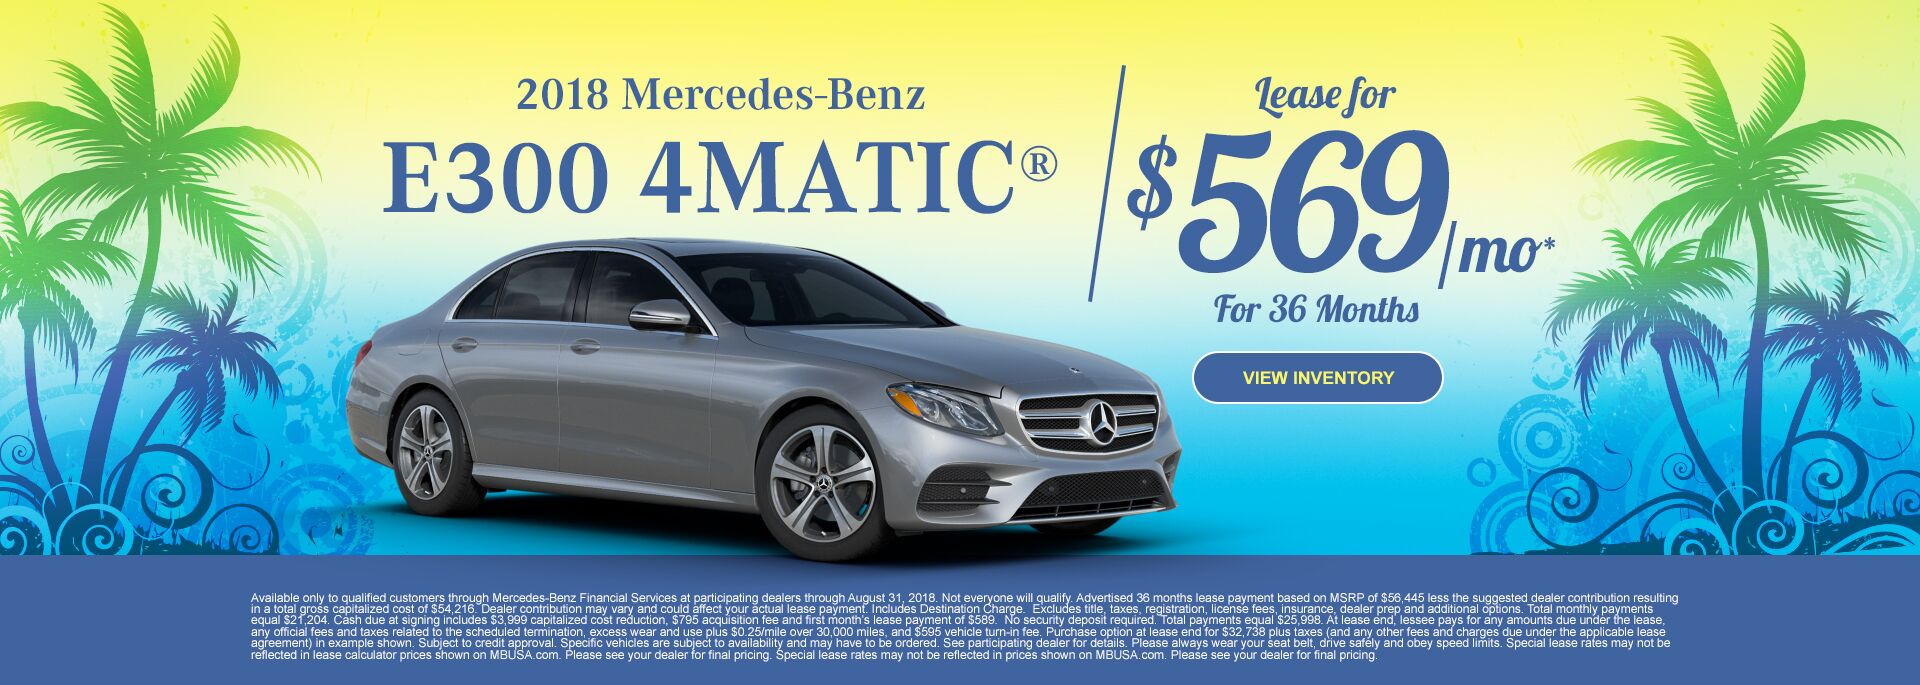 Mercedes-Benz Dealership Indianapolis IN | Used Cars World Wide ...